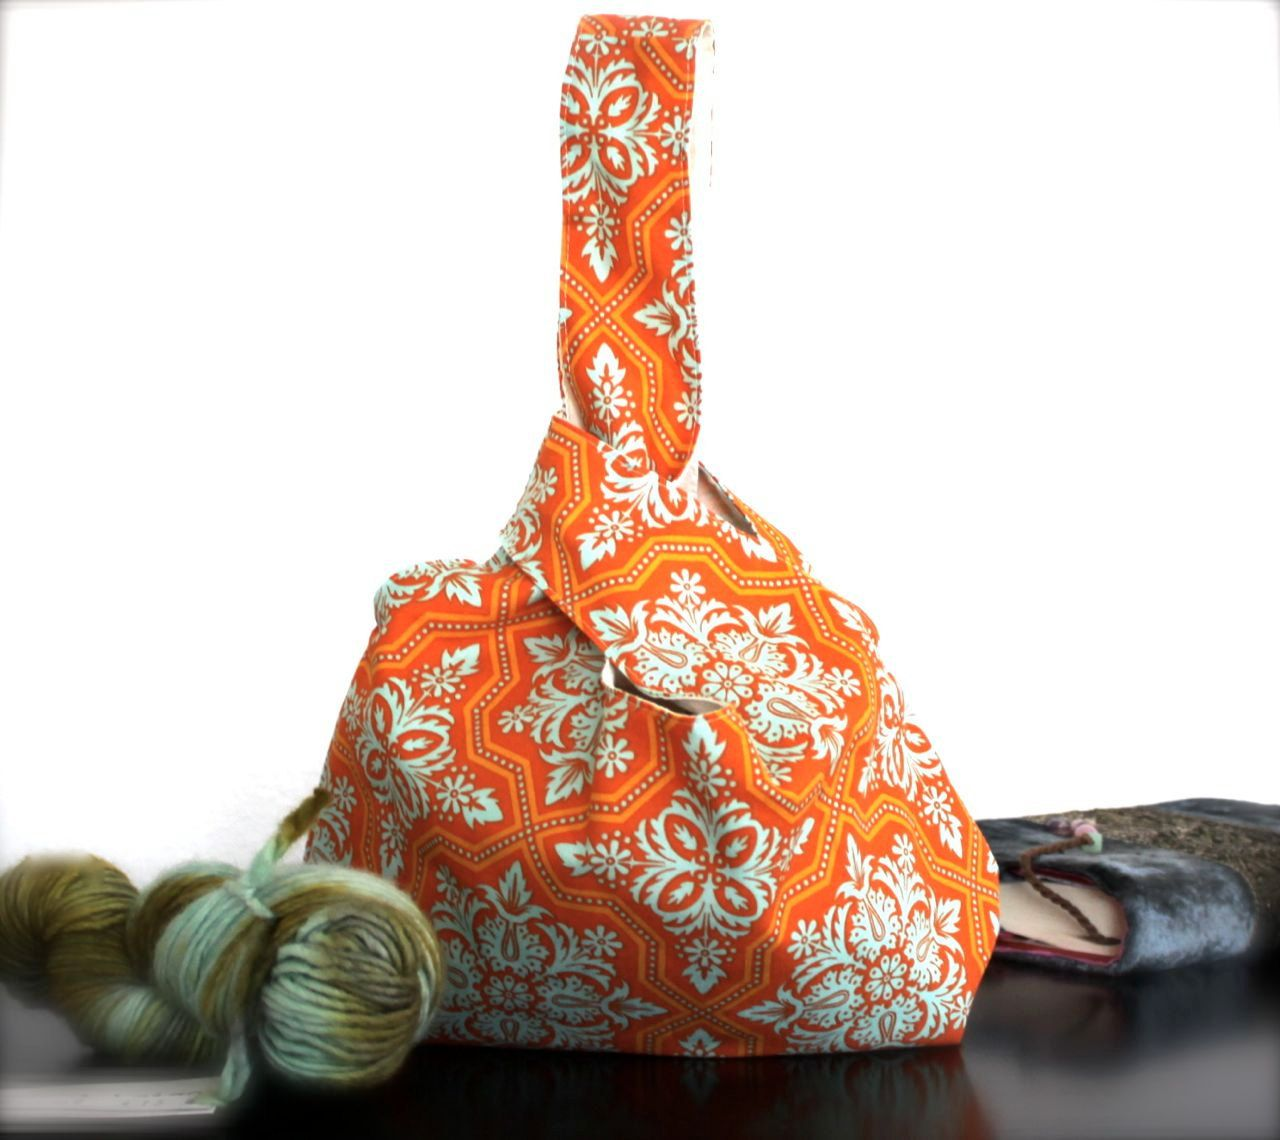 New Improved Project Pouch - Knitting Bag - Cosmetics - Travel - self closing - Wristlet. $22,00, via Etsy.